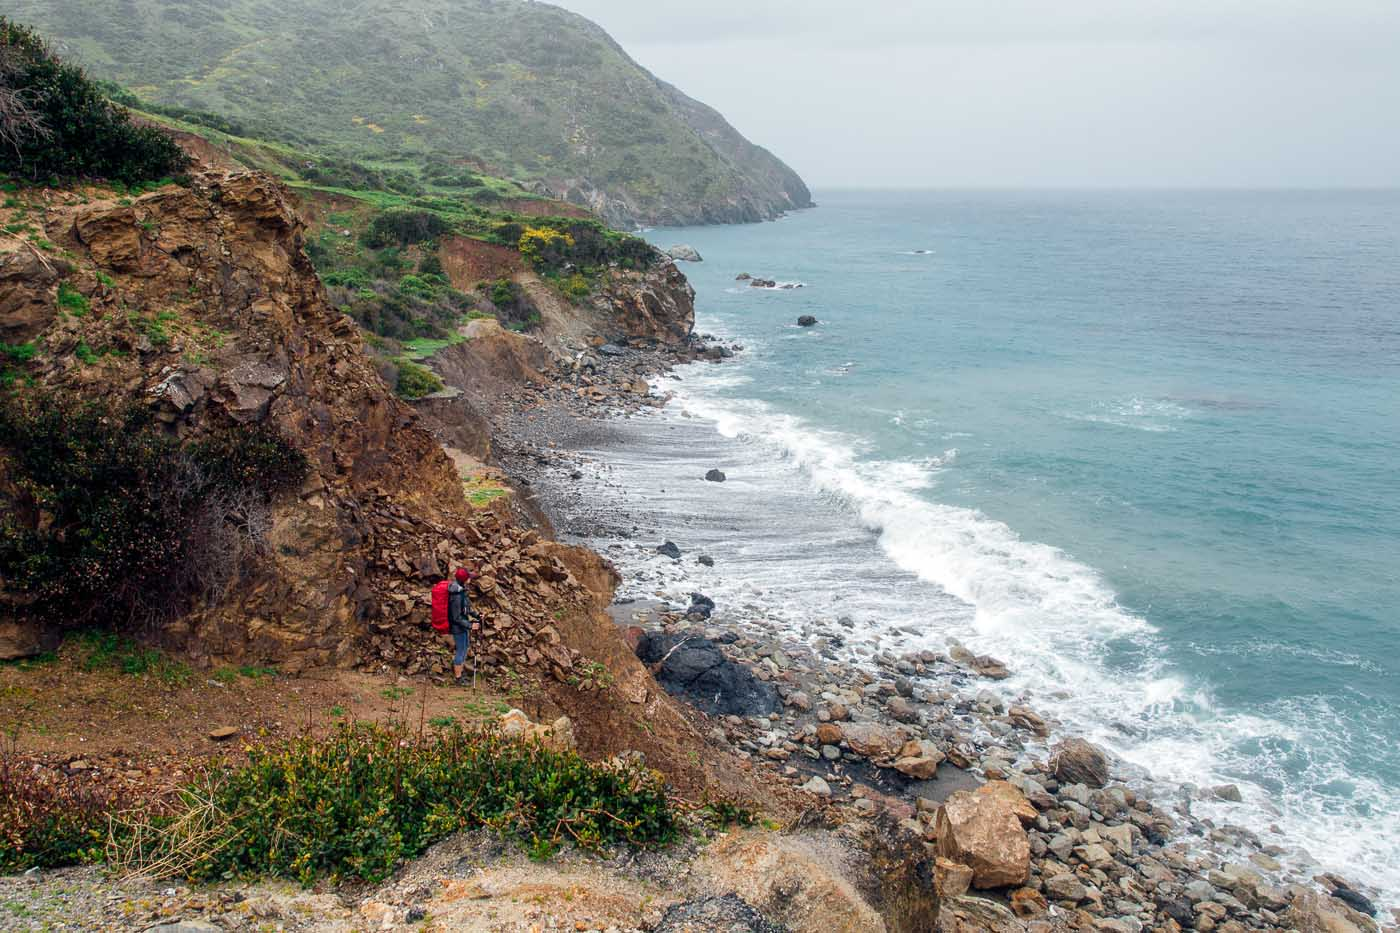 Woman standing at the edge of the rugged coastline of Catalina Island's Starlight Beach